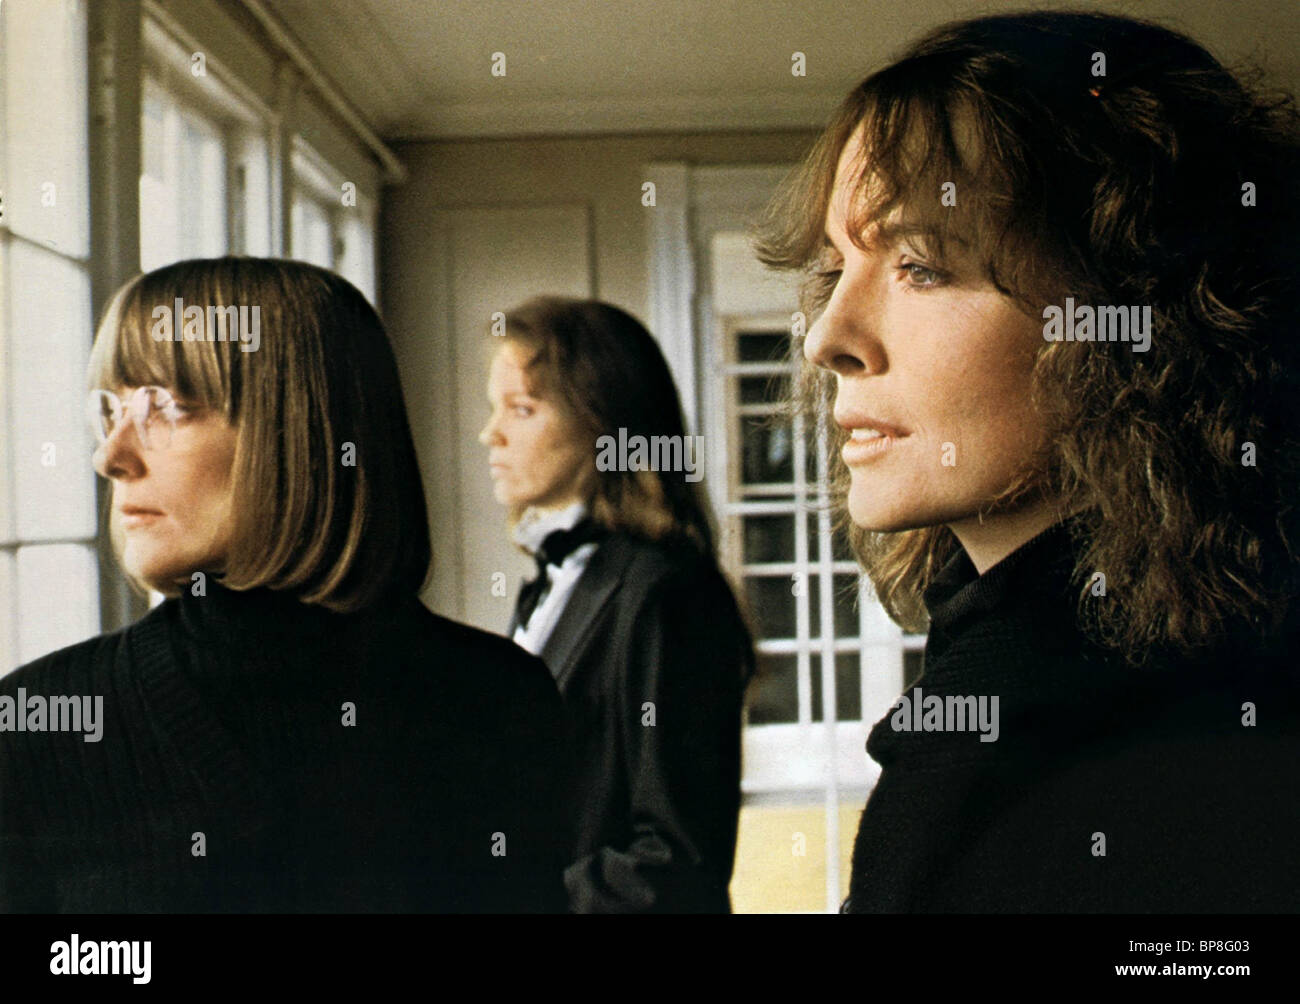 KRISTIN GRIFFITH MARY BETH HURT U0026 DIANE KEATON INTERIORS (1978)   Stock  Image